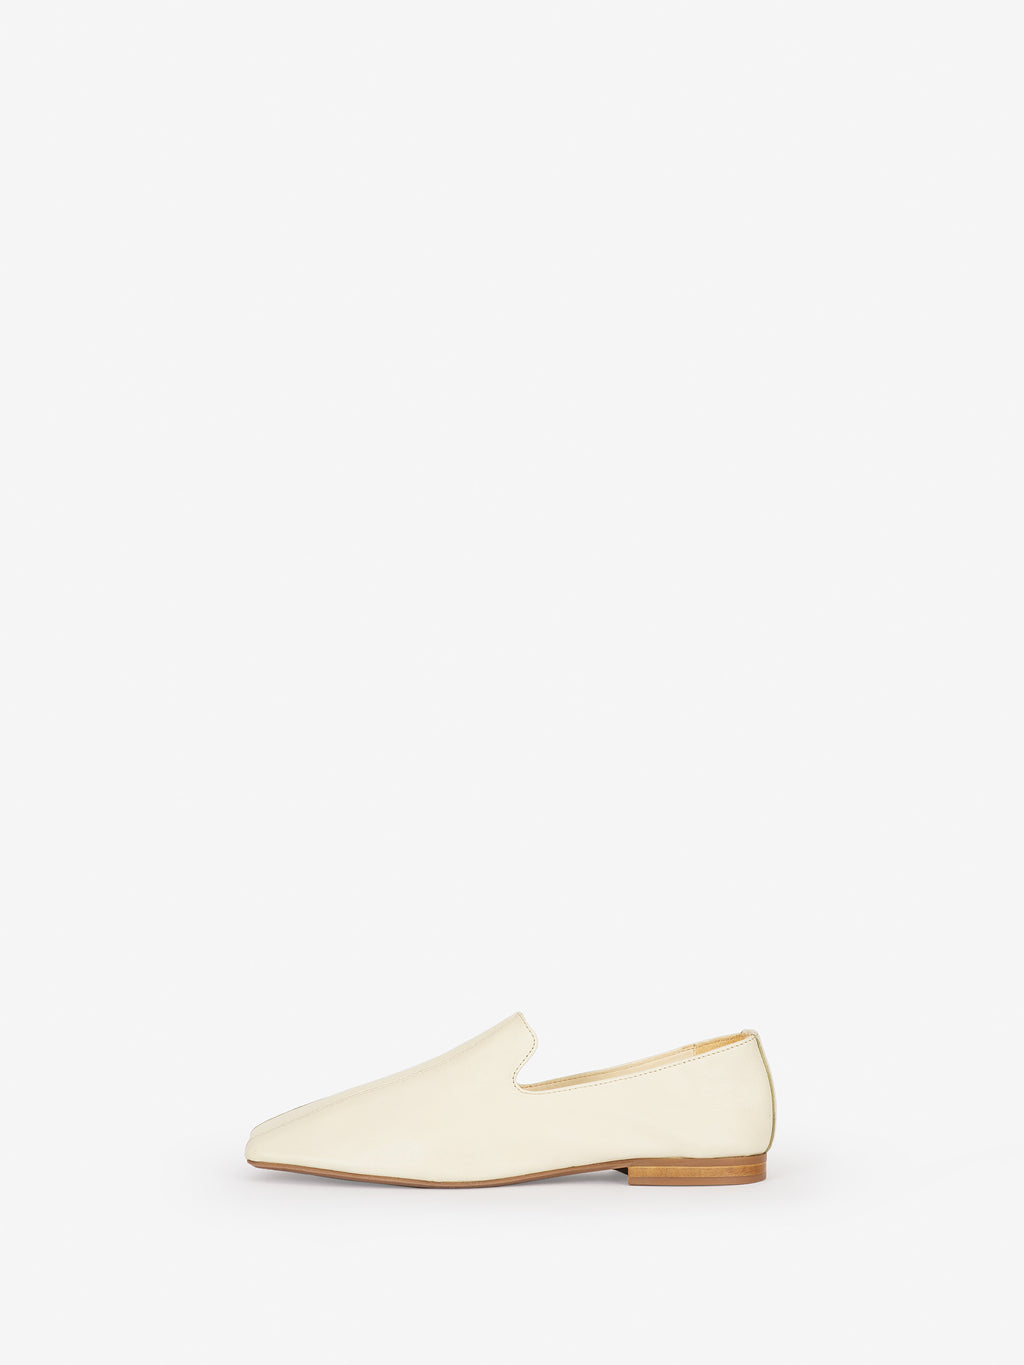 Comfy and chic loafer with a super soft decnstructed construction vanilla colorway viewed from side